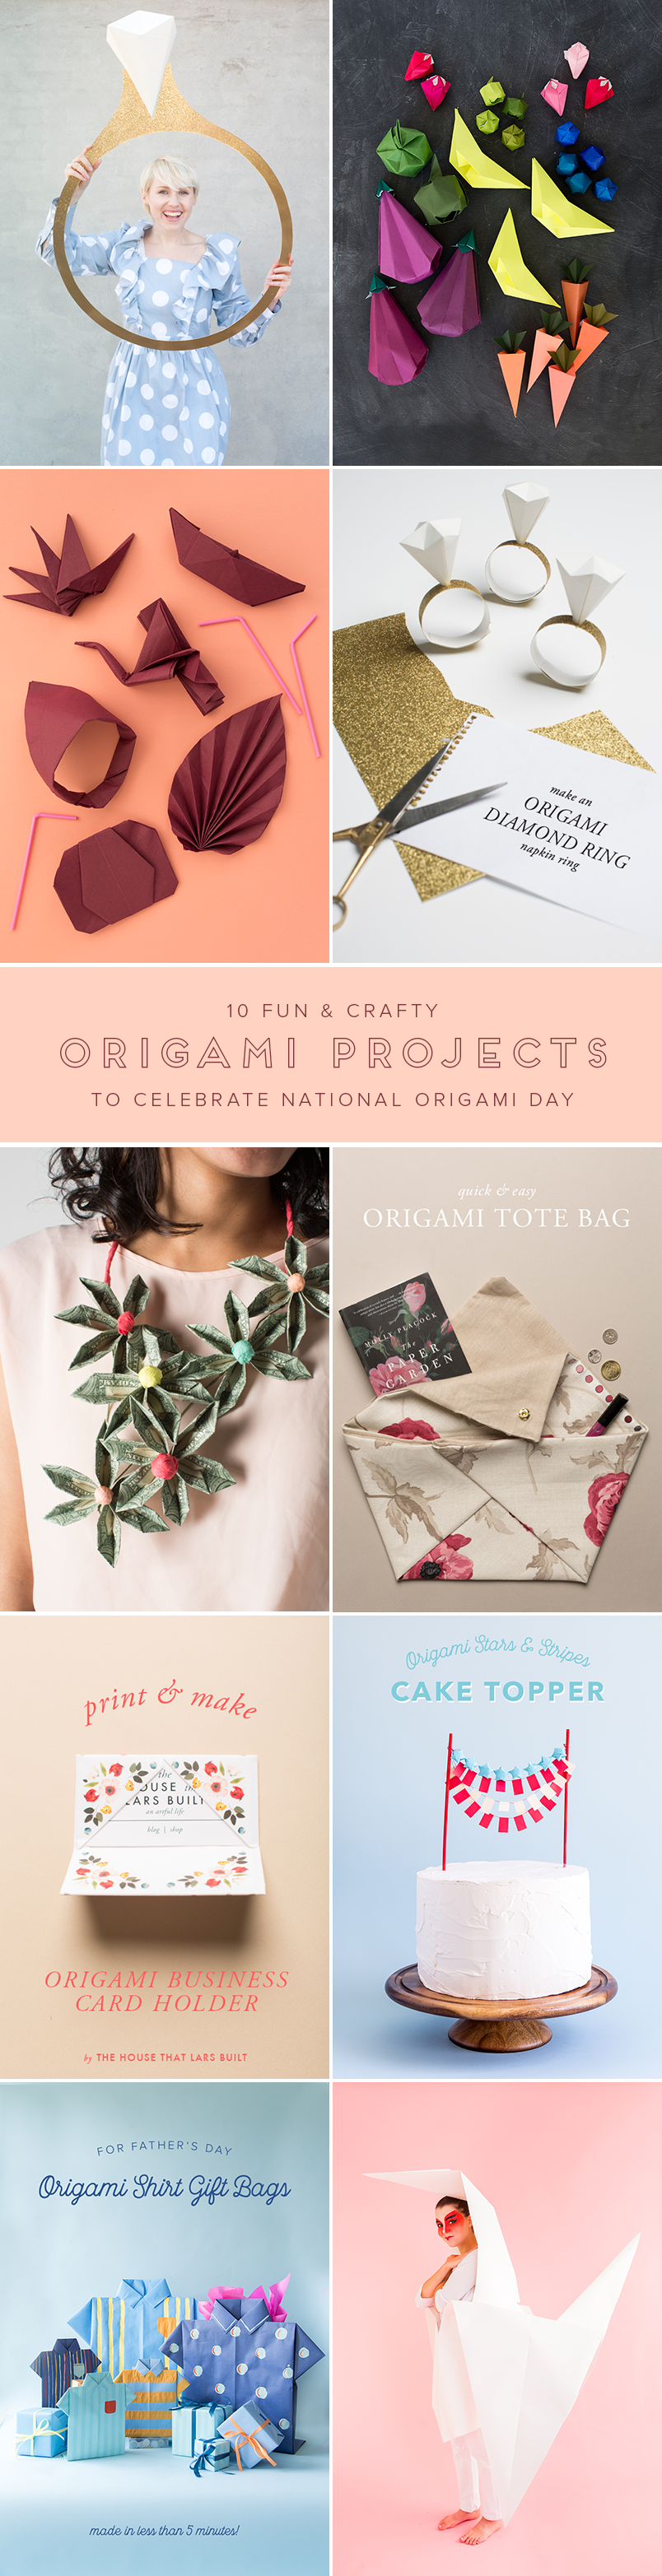 Top 10 Origami Projects for Beginners | 3130x804